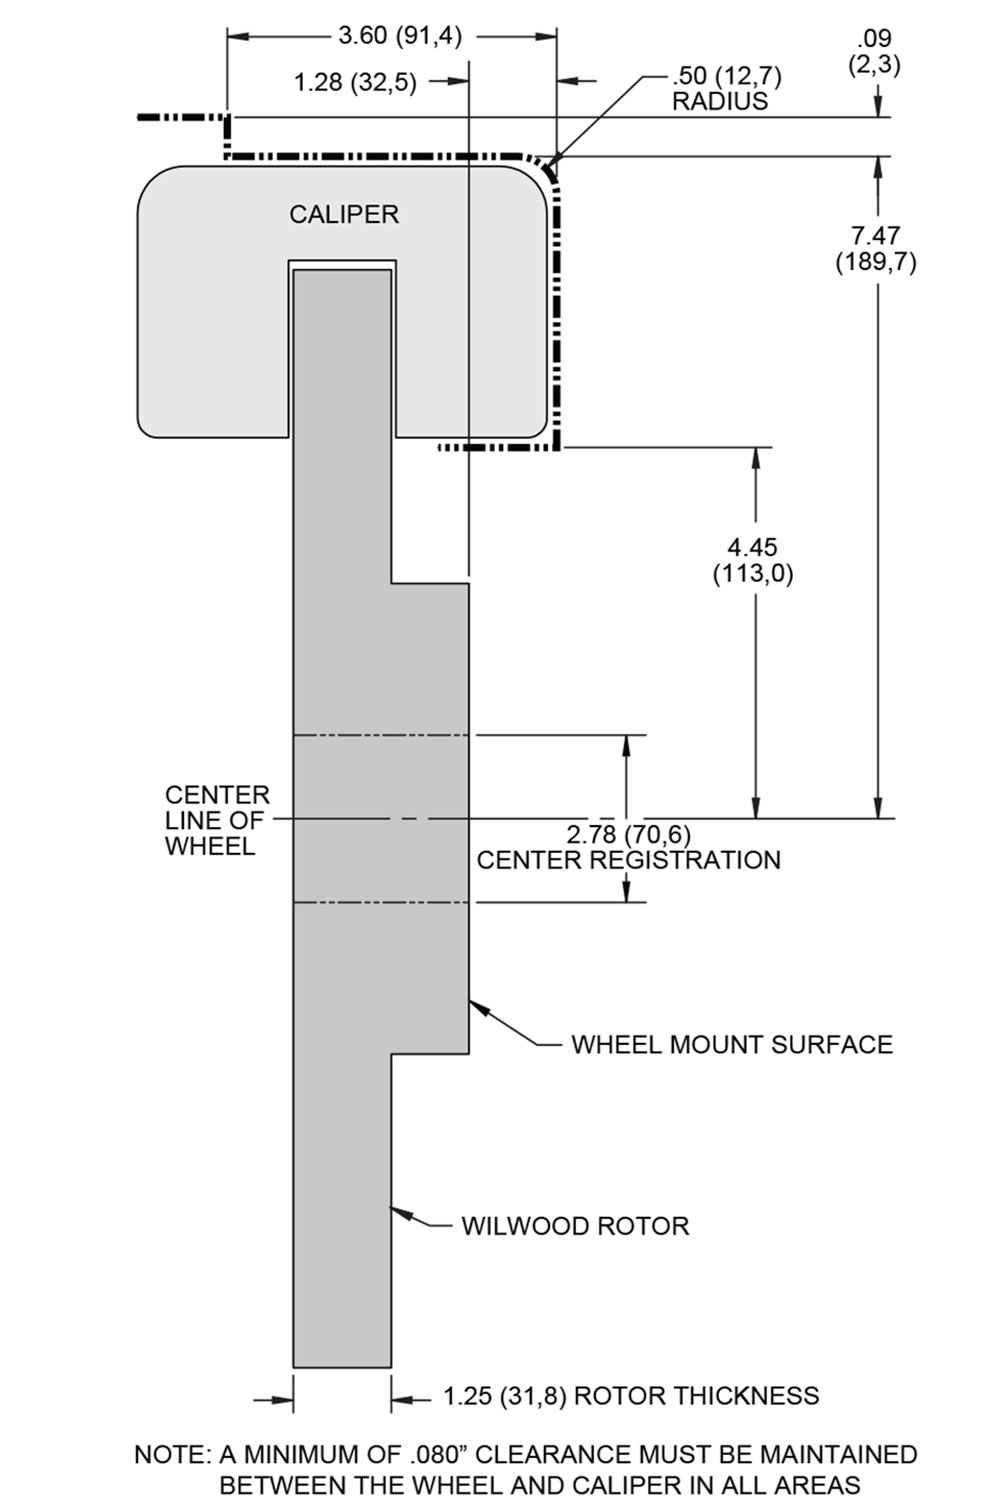 To aide in wheel selection, this diagram from Wilwood gives the dimensions of the 140-8921 brake kit.